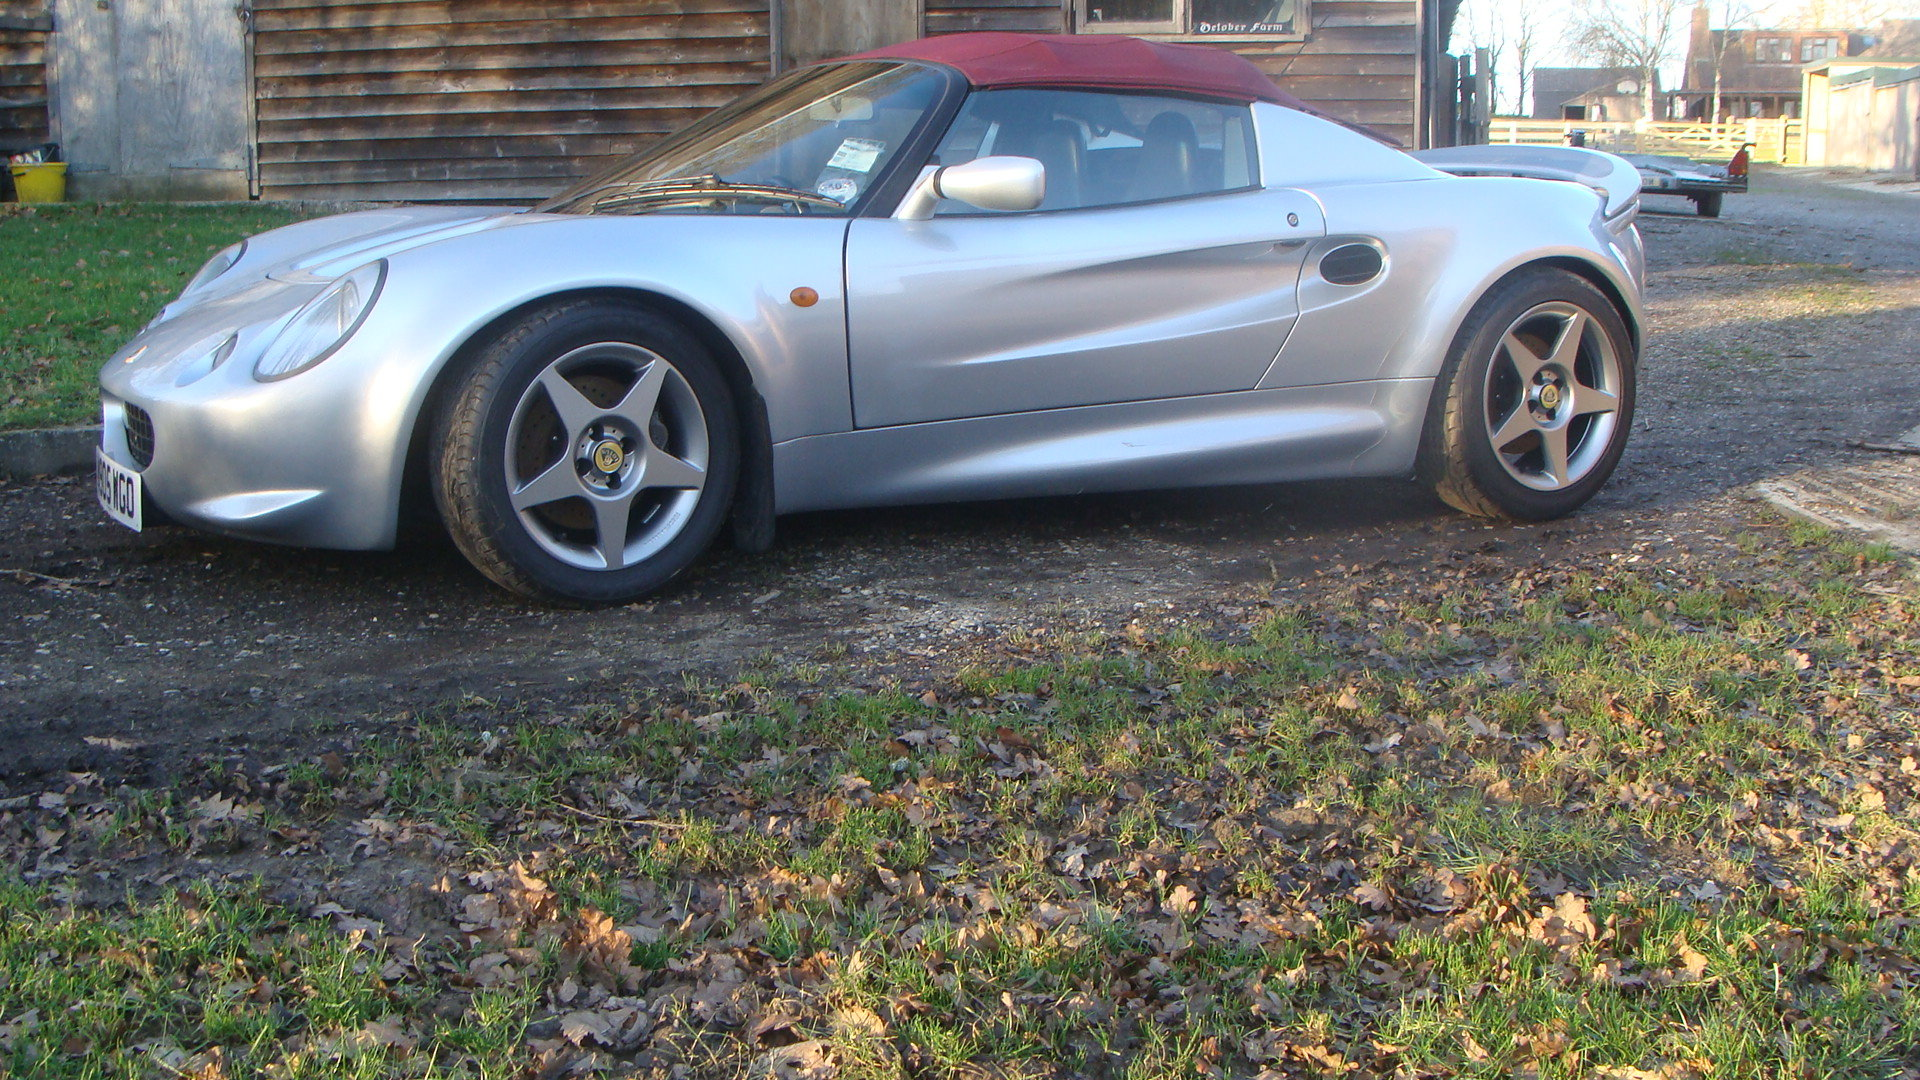 2000 Lotus Elise 160 Sport roadster For Sale (picture 3 of 6)